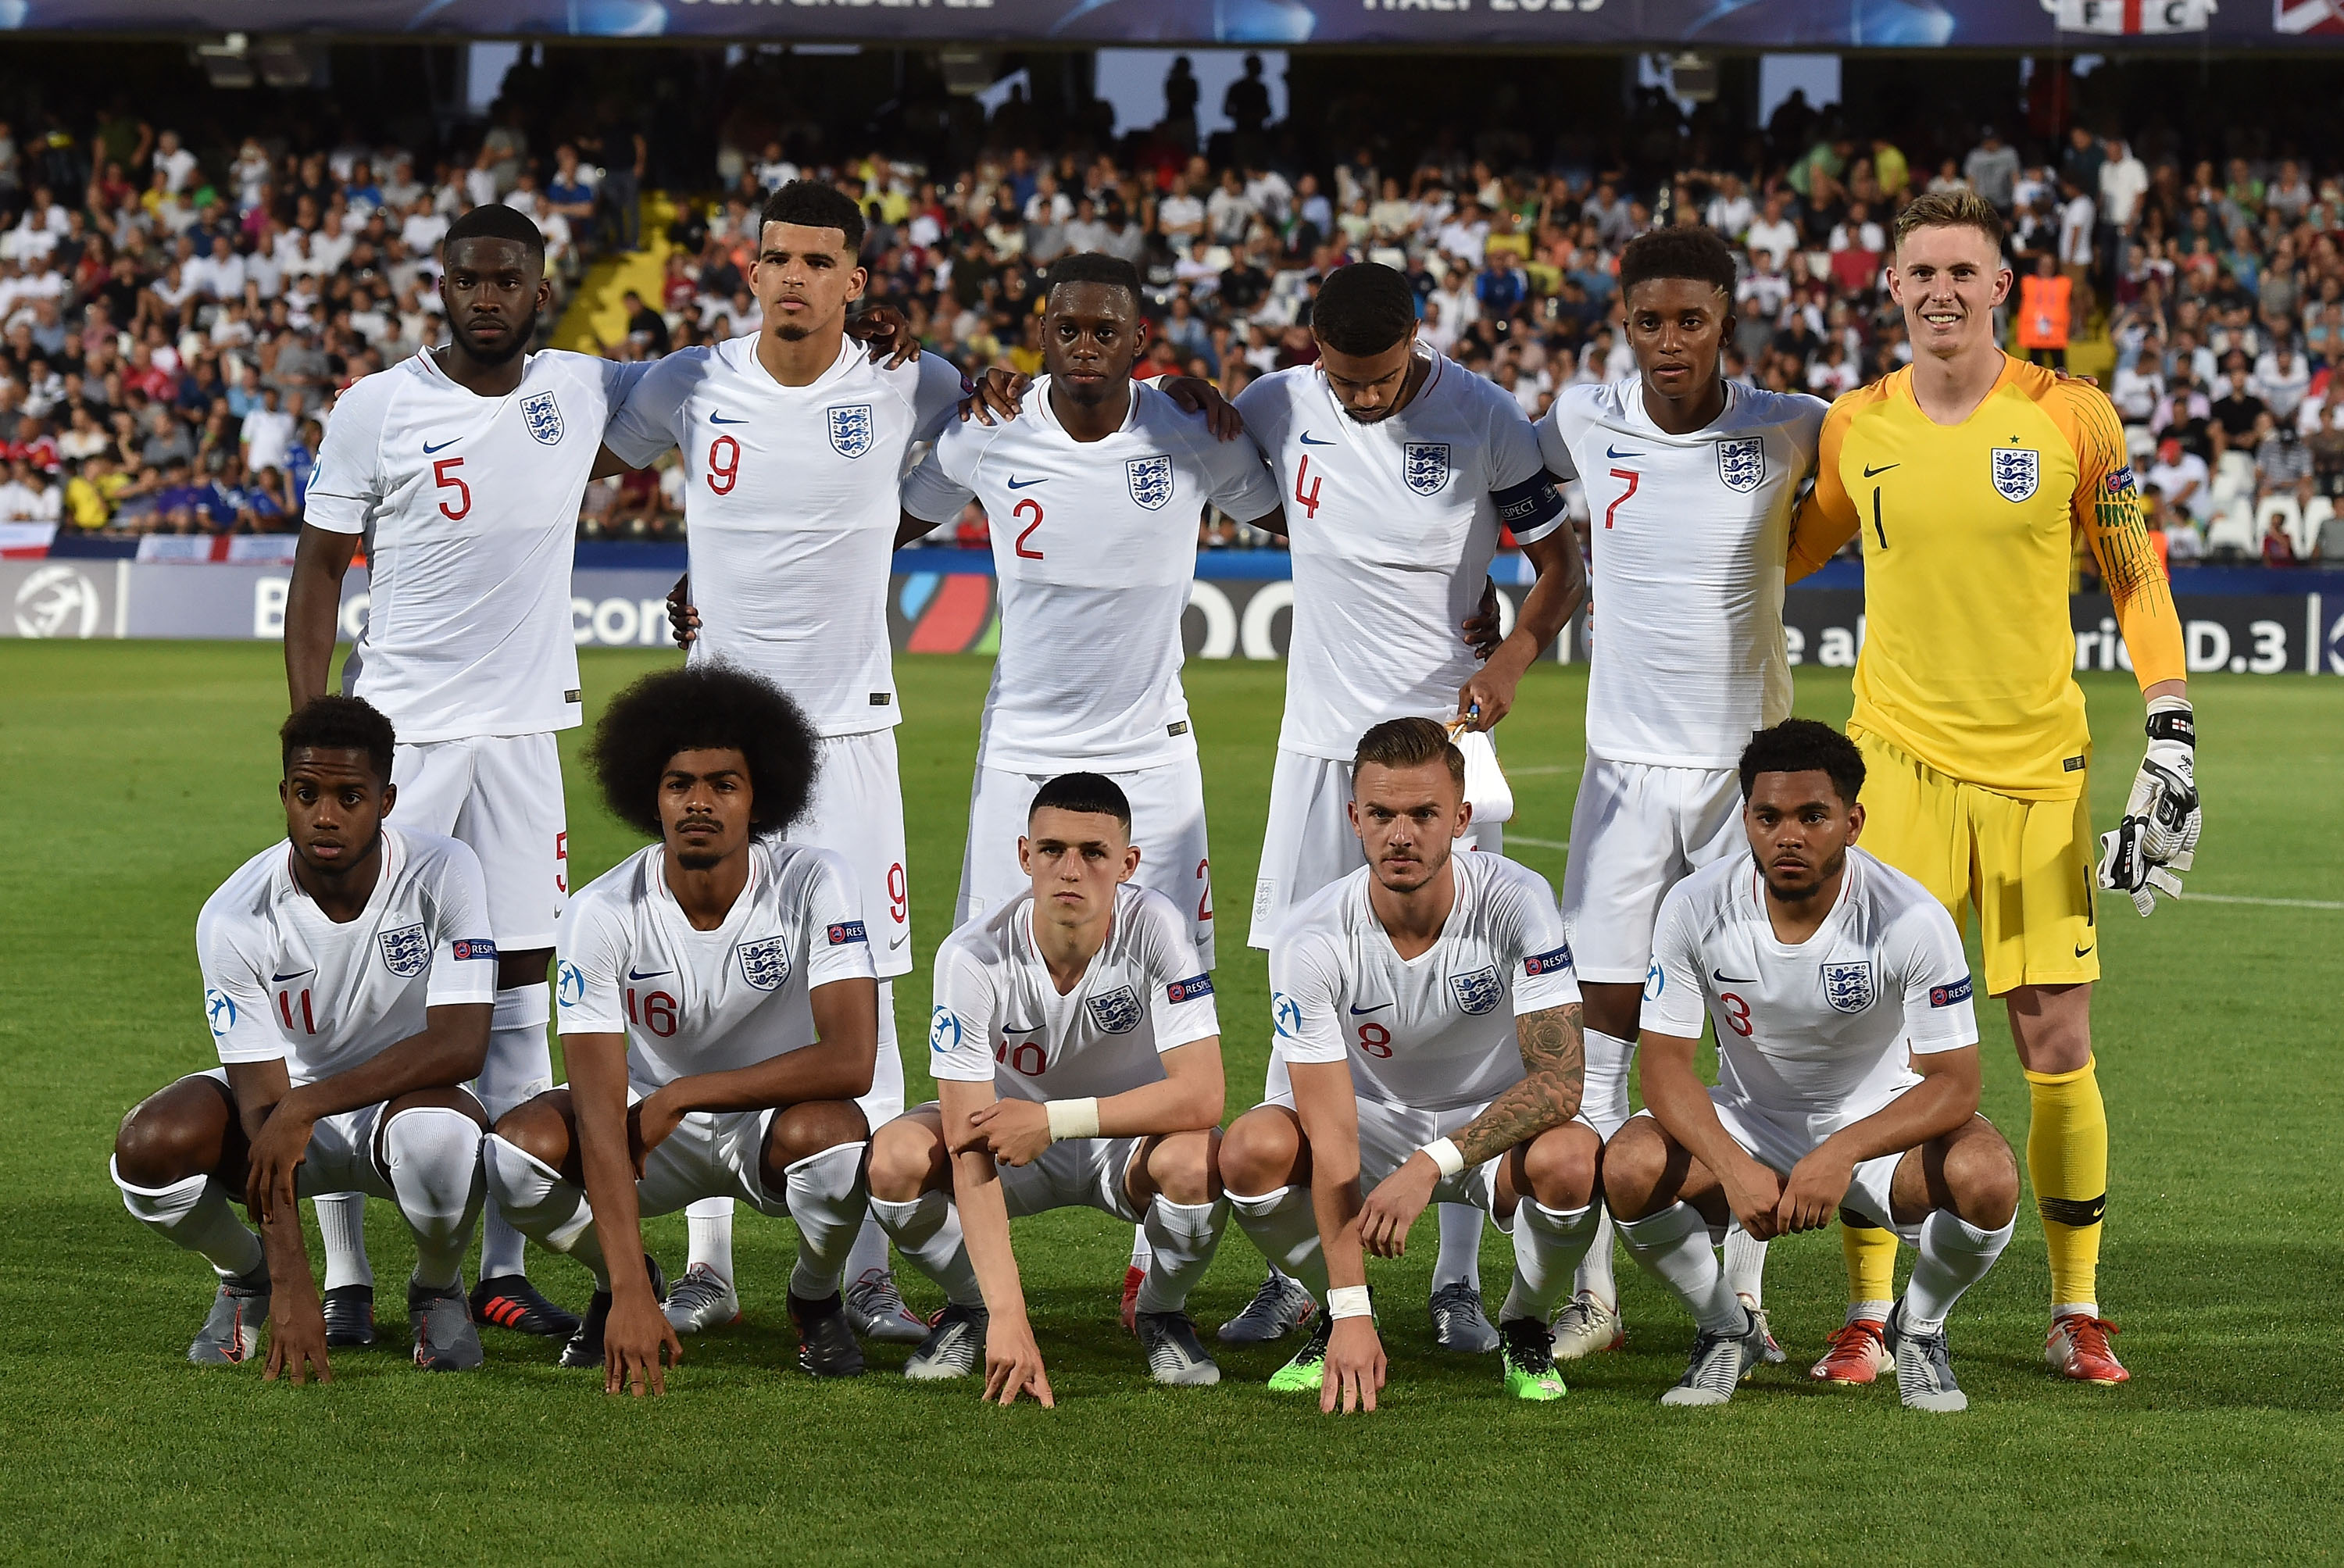 Chelsea internationals: Pulisic, USA toy with Guyana; England U21 throw it all away against France